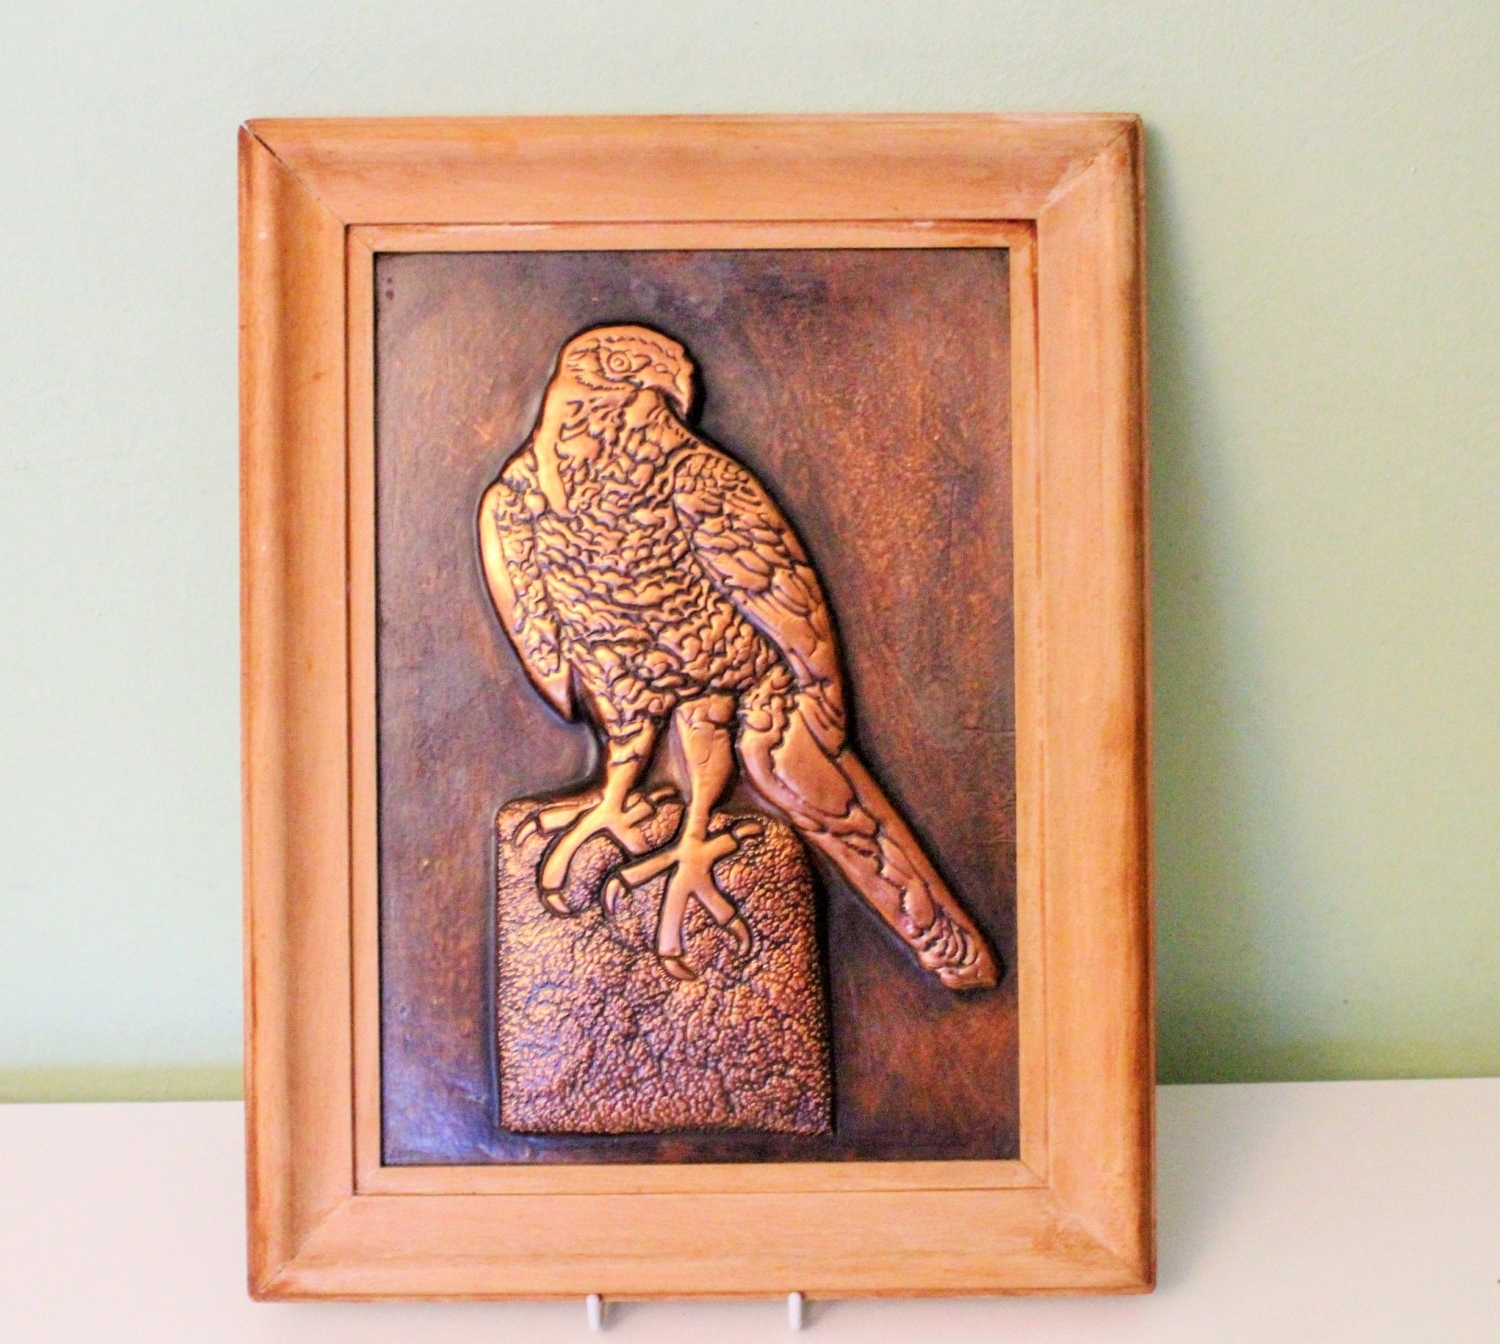 Hammered Metal Wall Art Pertaining To 2018 Vintage Framed 3D Hammered Copper Picture Eagle Metal Wall Art (Gallery 5 of 15)